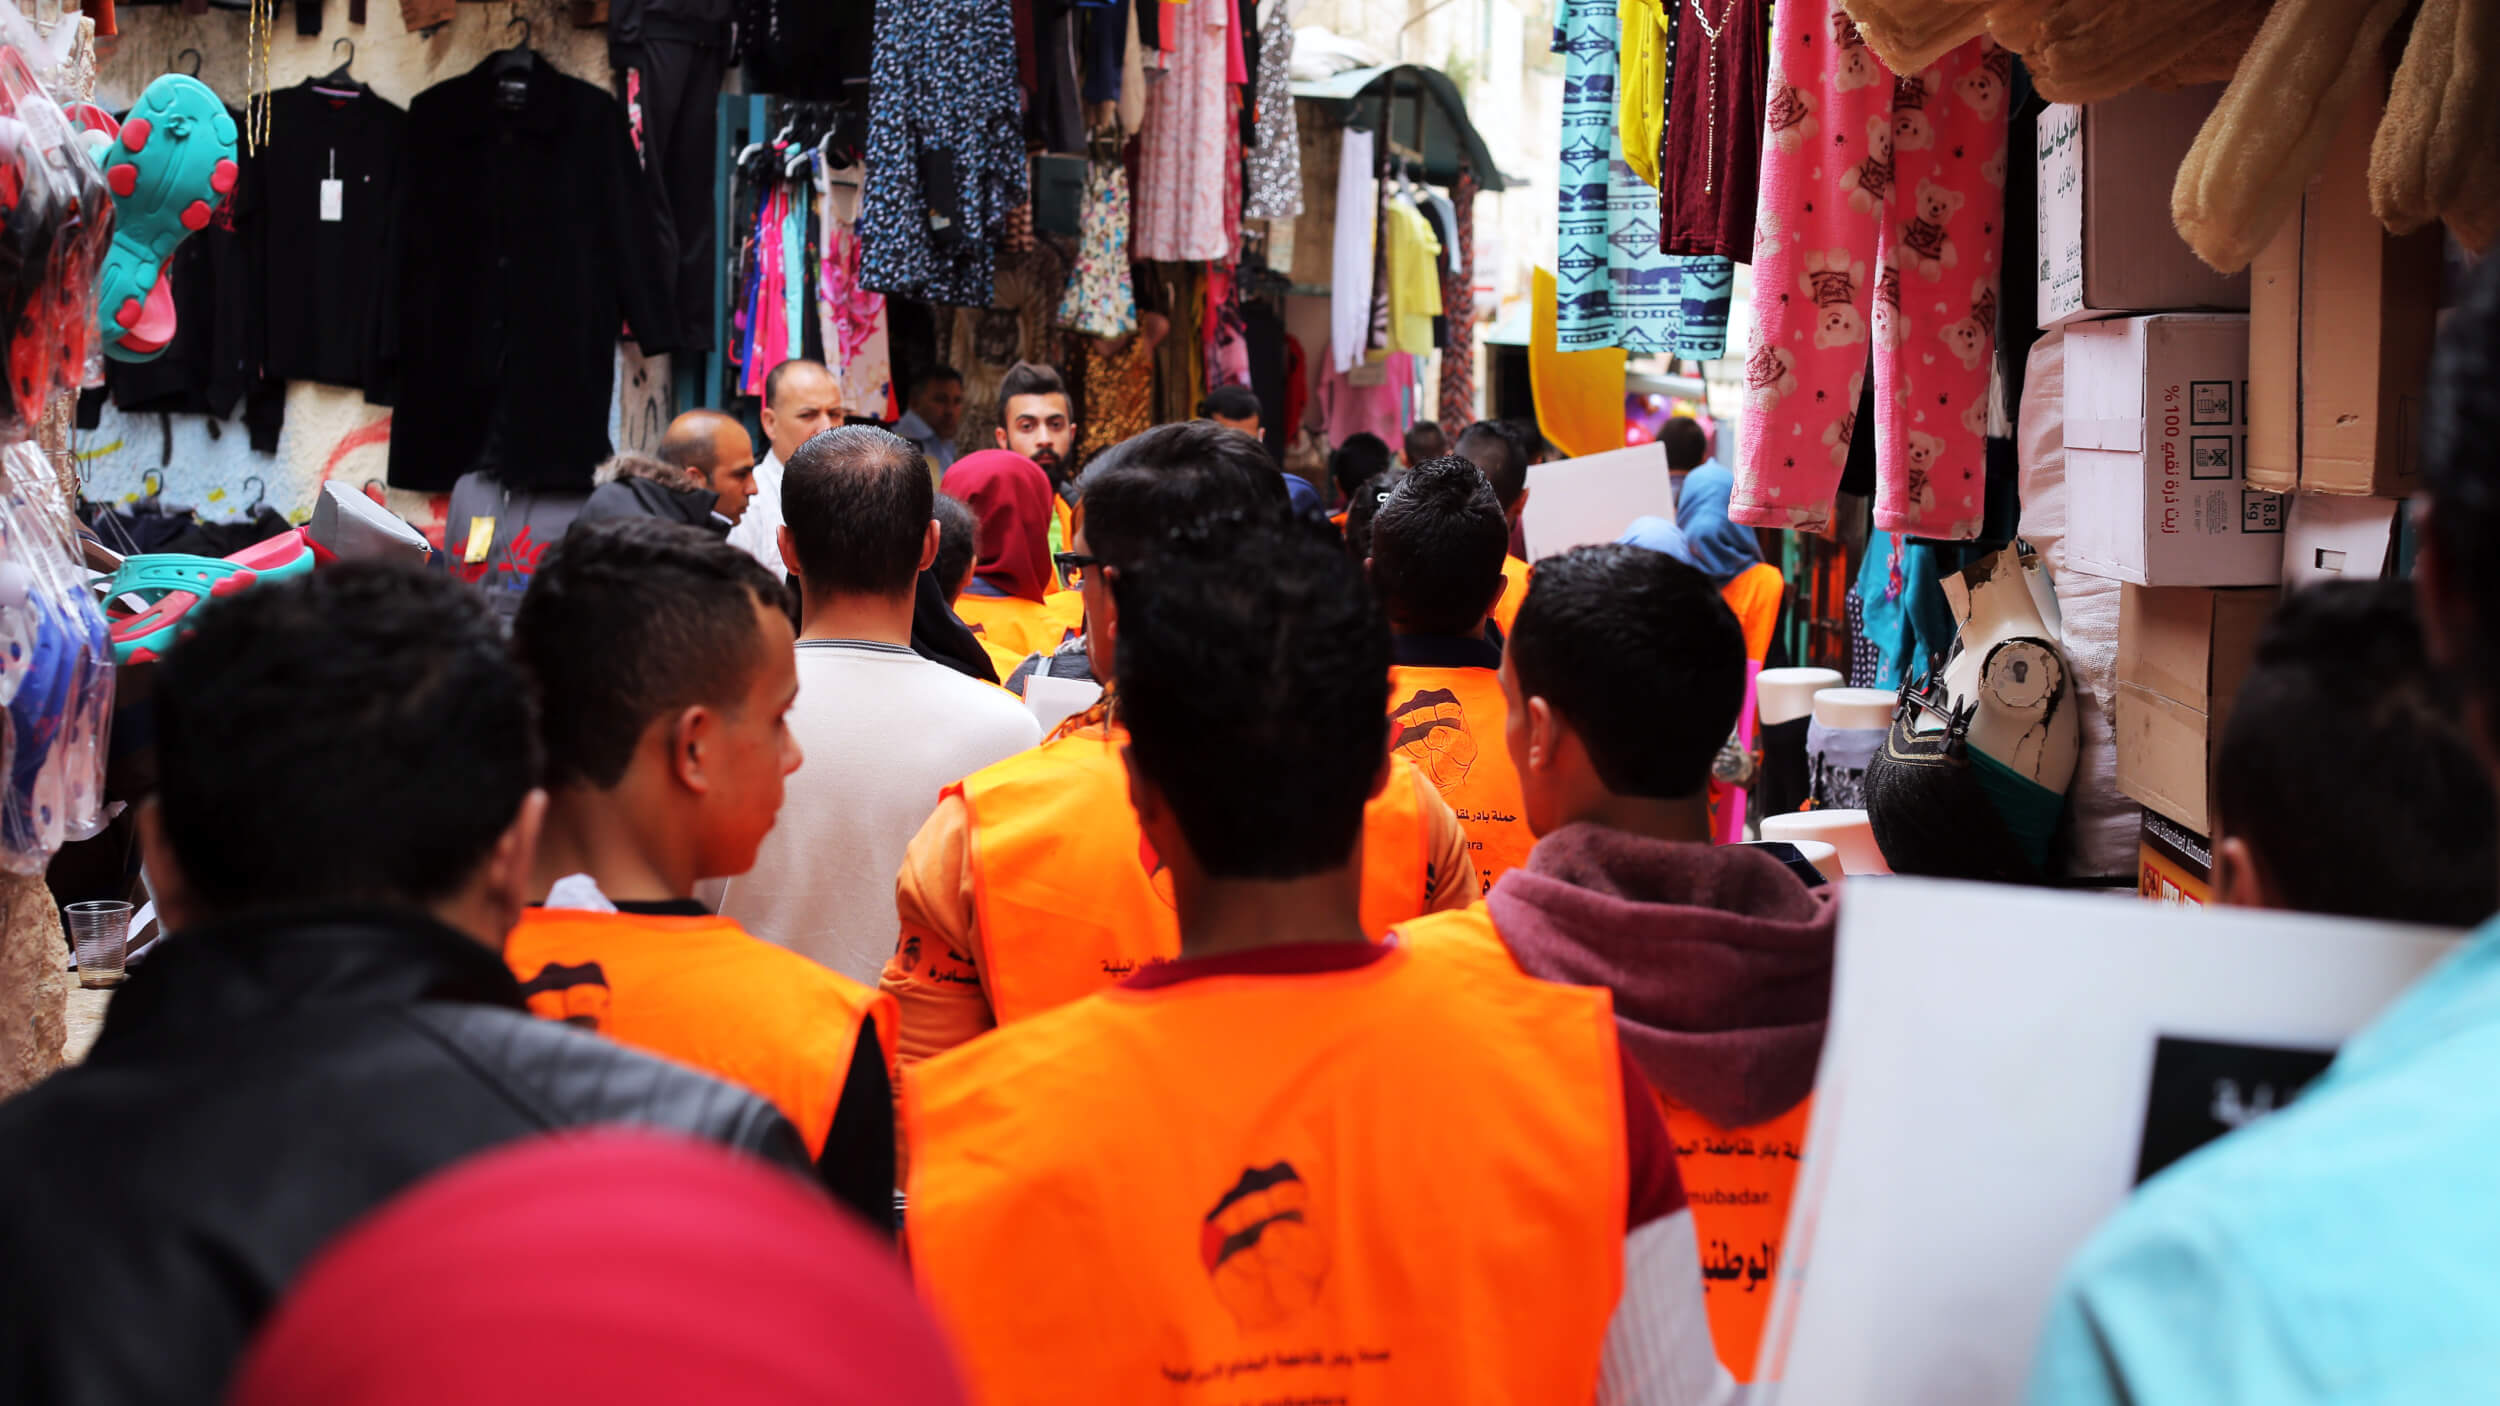 Marchers made their way from open streets to Bethlehem's winding alleyways in the city's suk, or traditional marketplace. (Photo: Abed al Qaisi)